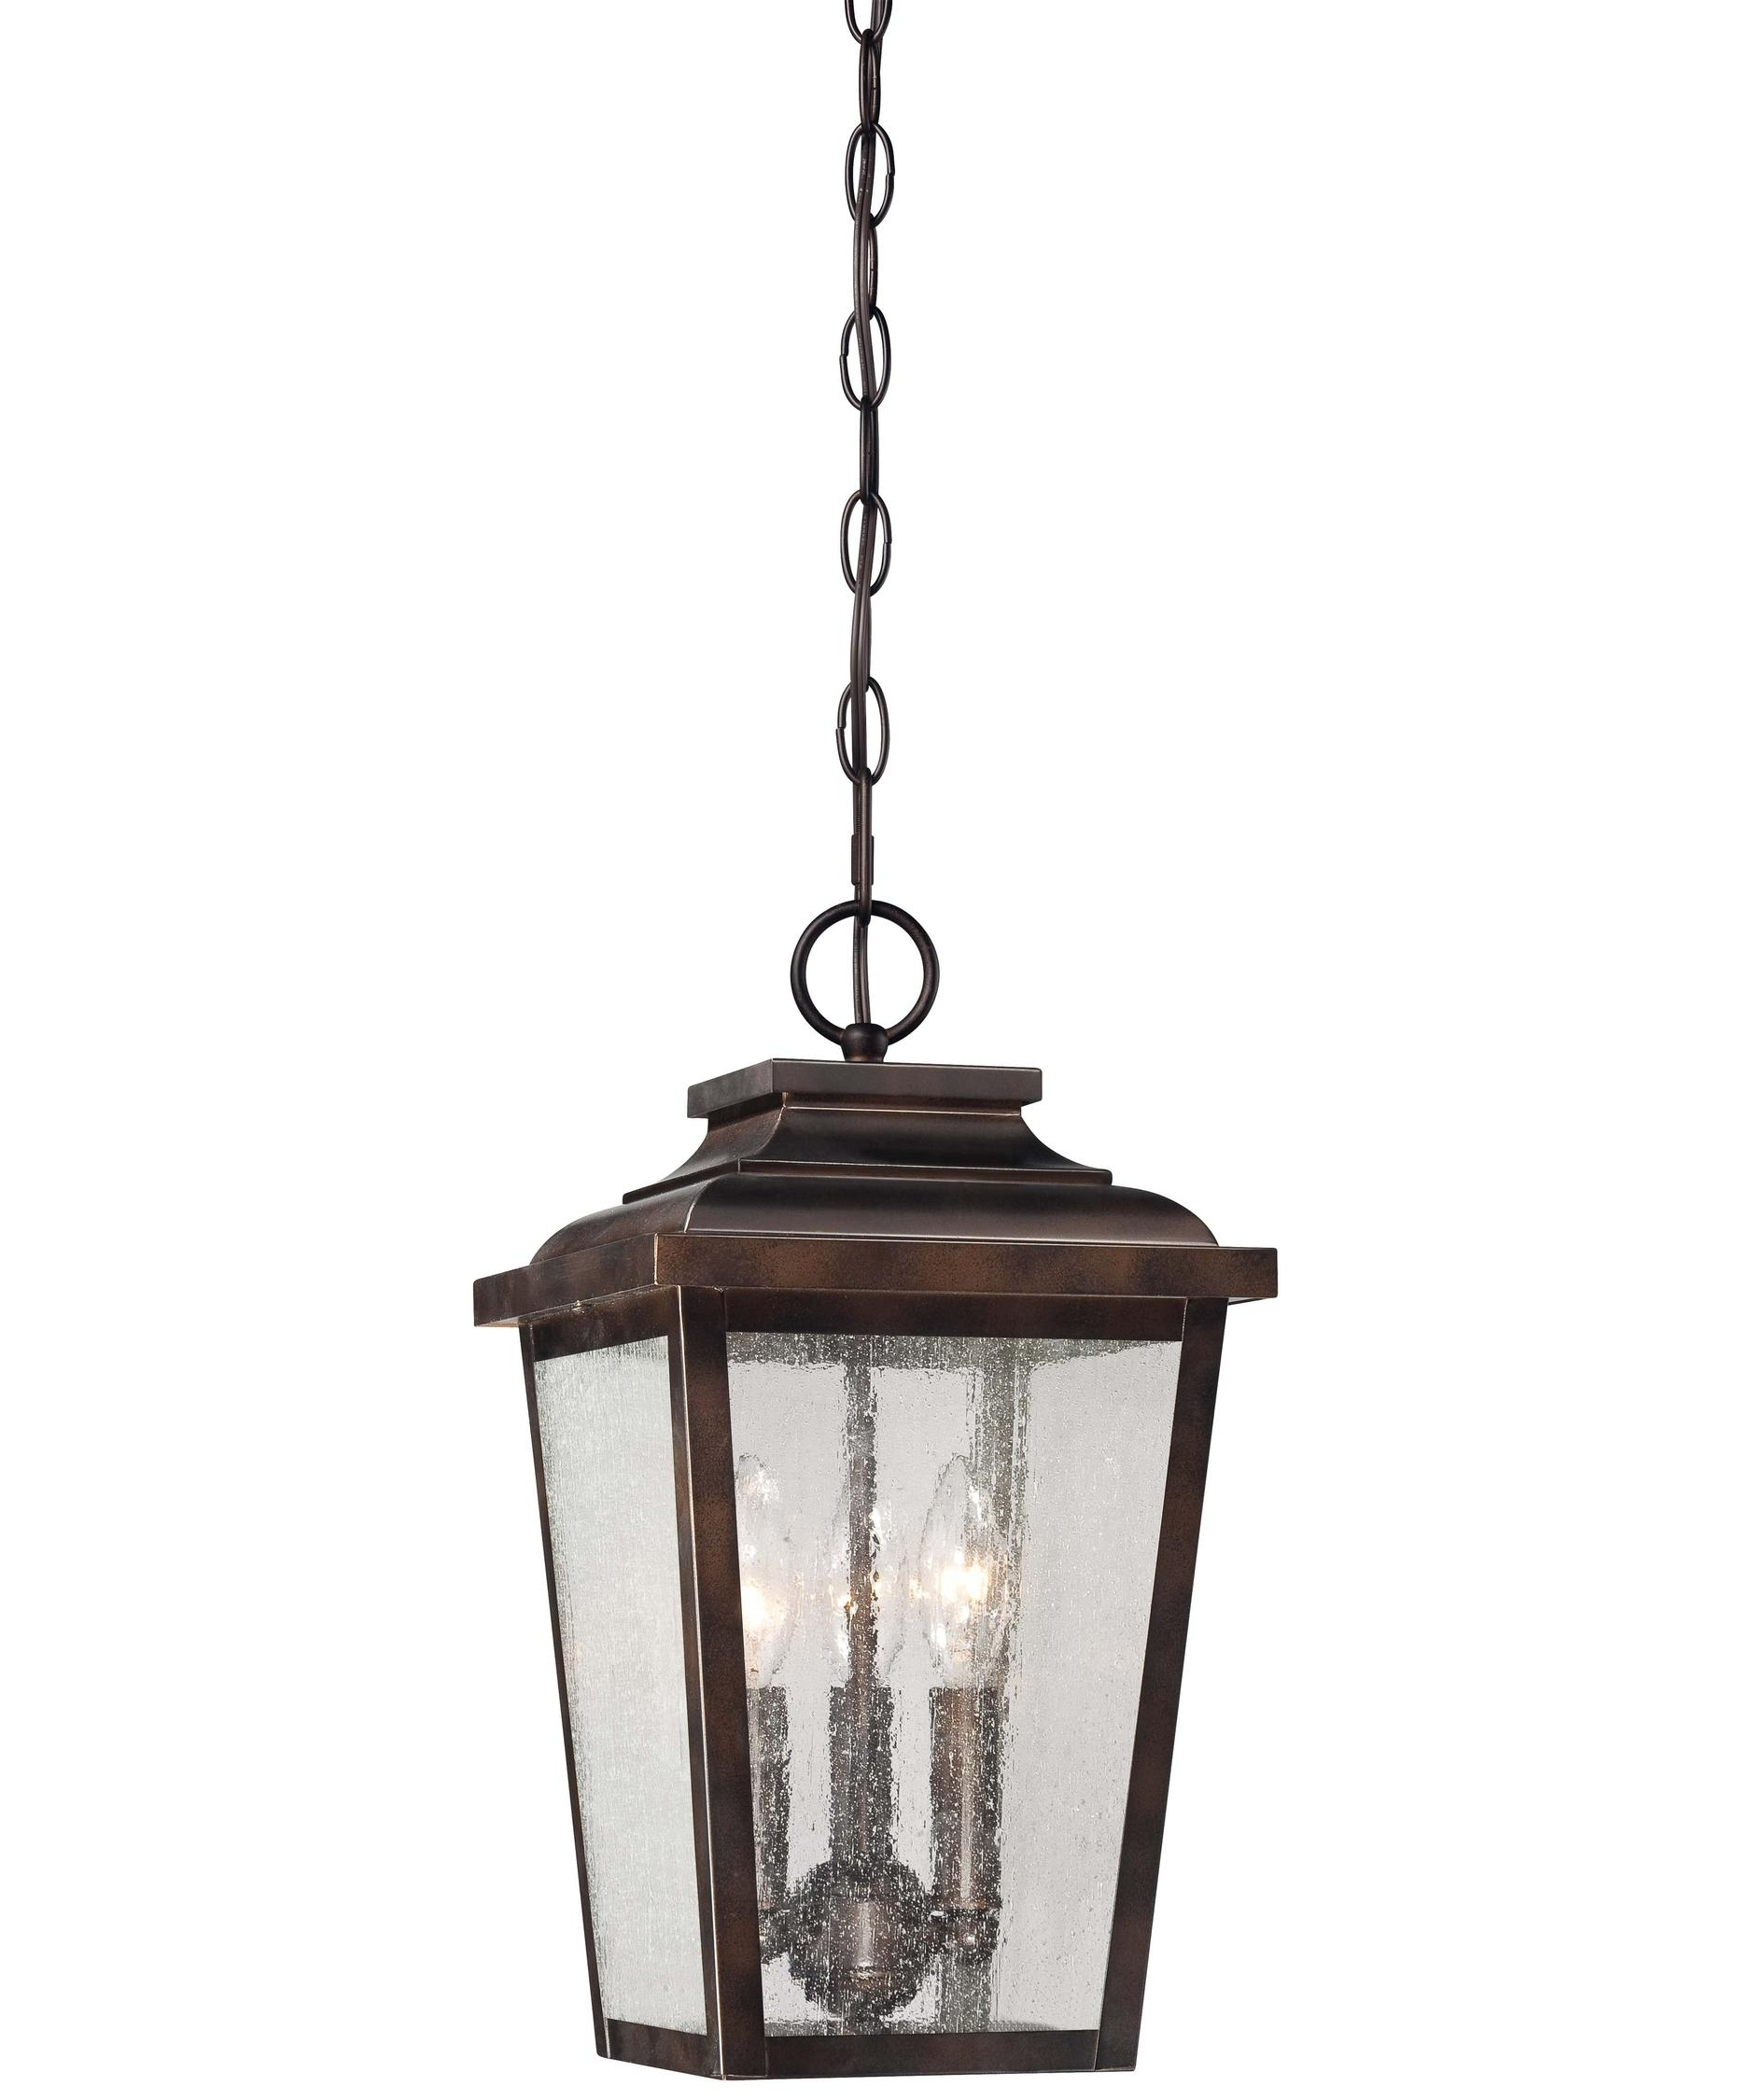 Outdoor Hanging Lamps Regarding 2018 Minka Lavery 72174 Irvington Manor 9 Inch Wide 3 Light Outdoor (View 17 of 20)